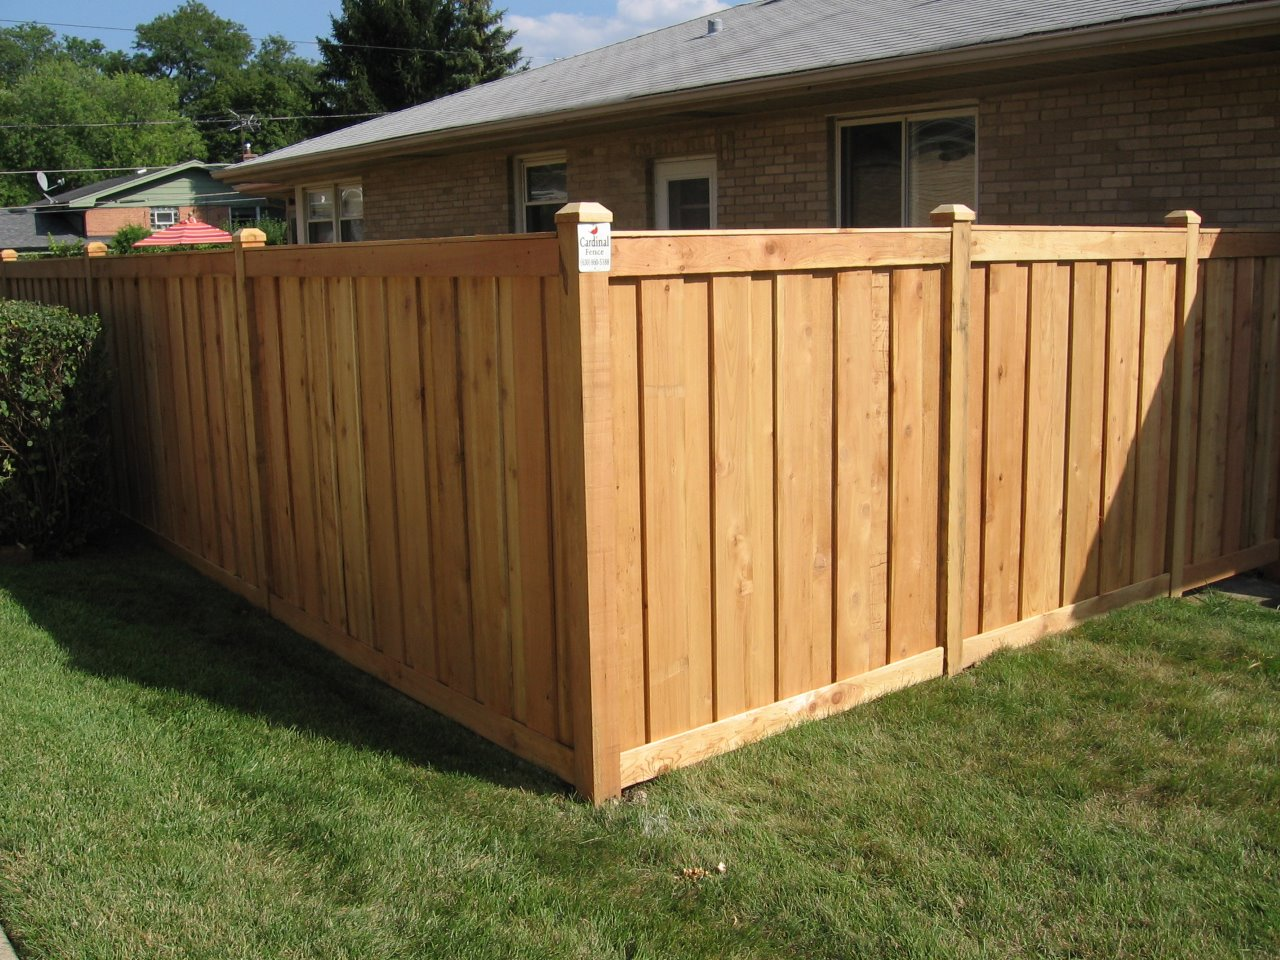 Cedar Fencing From Cardinal Fence And Supply In Bensenville